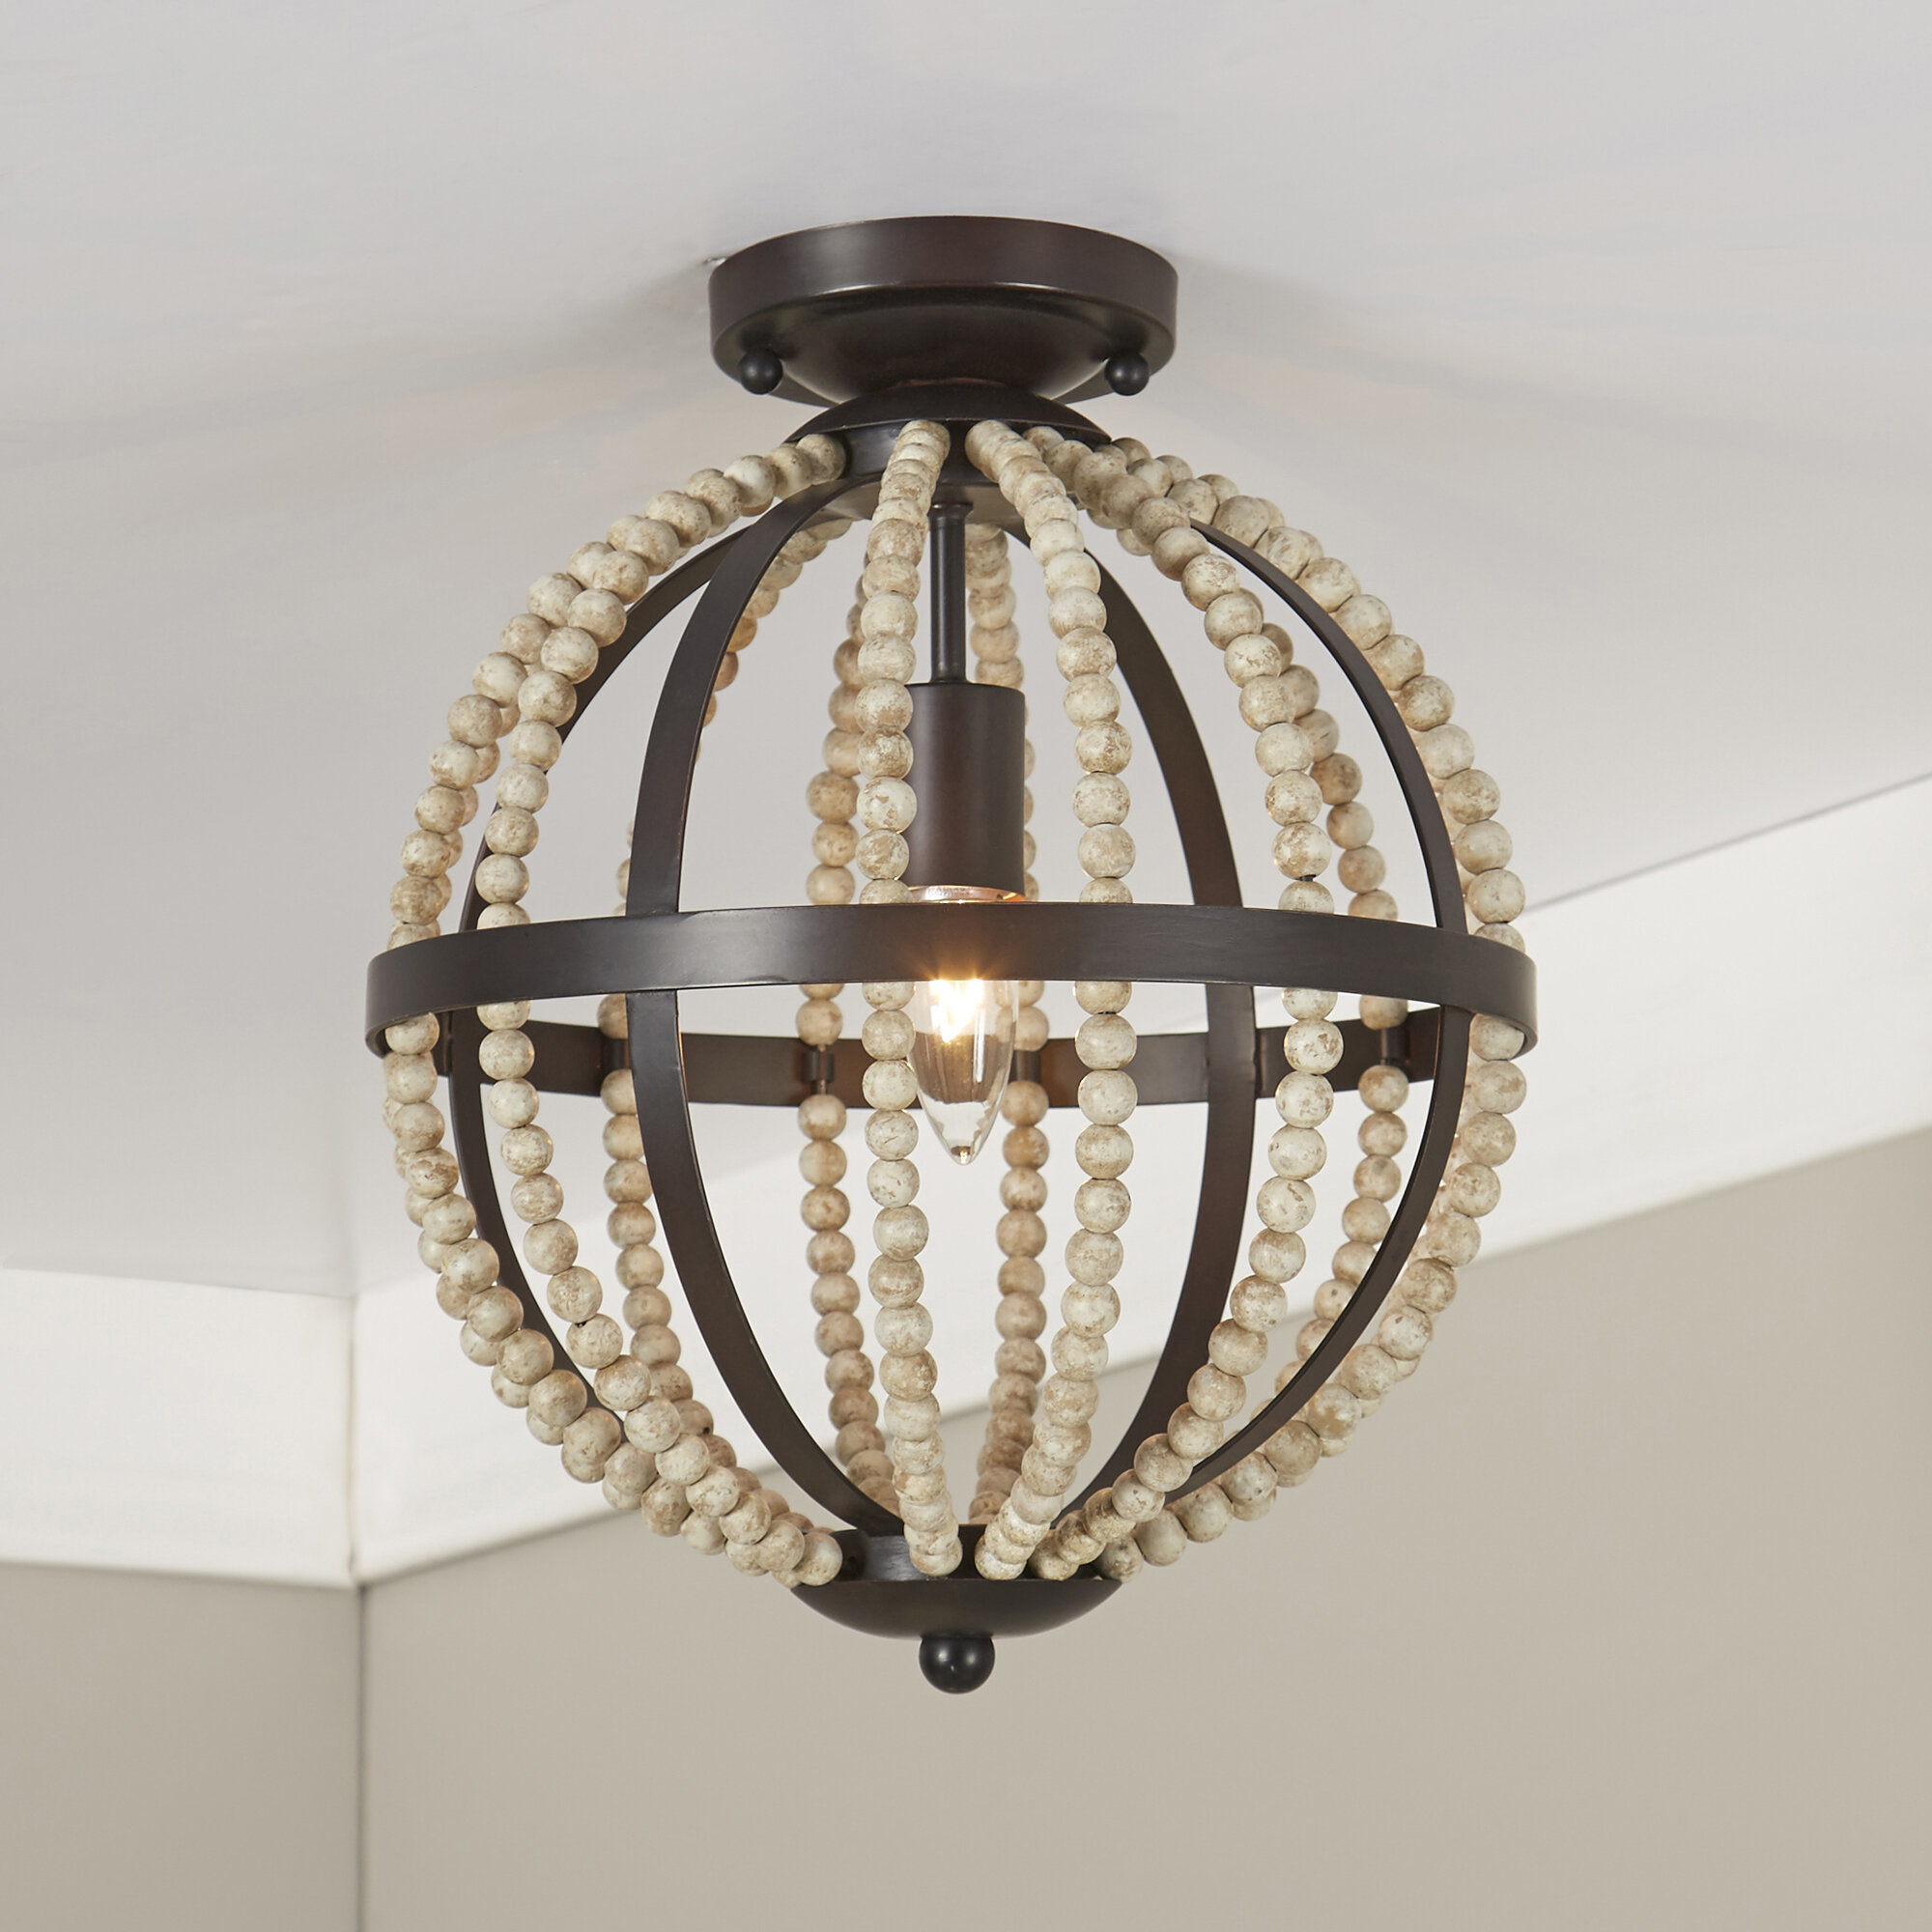 products light mount flush arthouse wz melange lighting collections the ceilings web small montauk co lamp ceiling